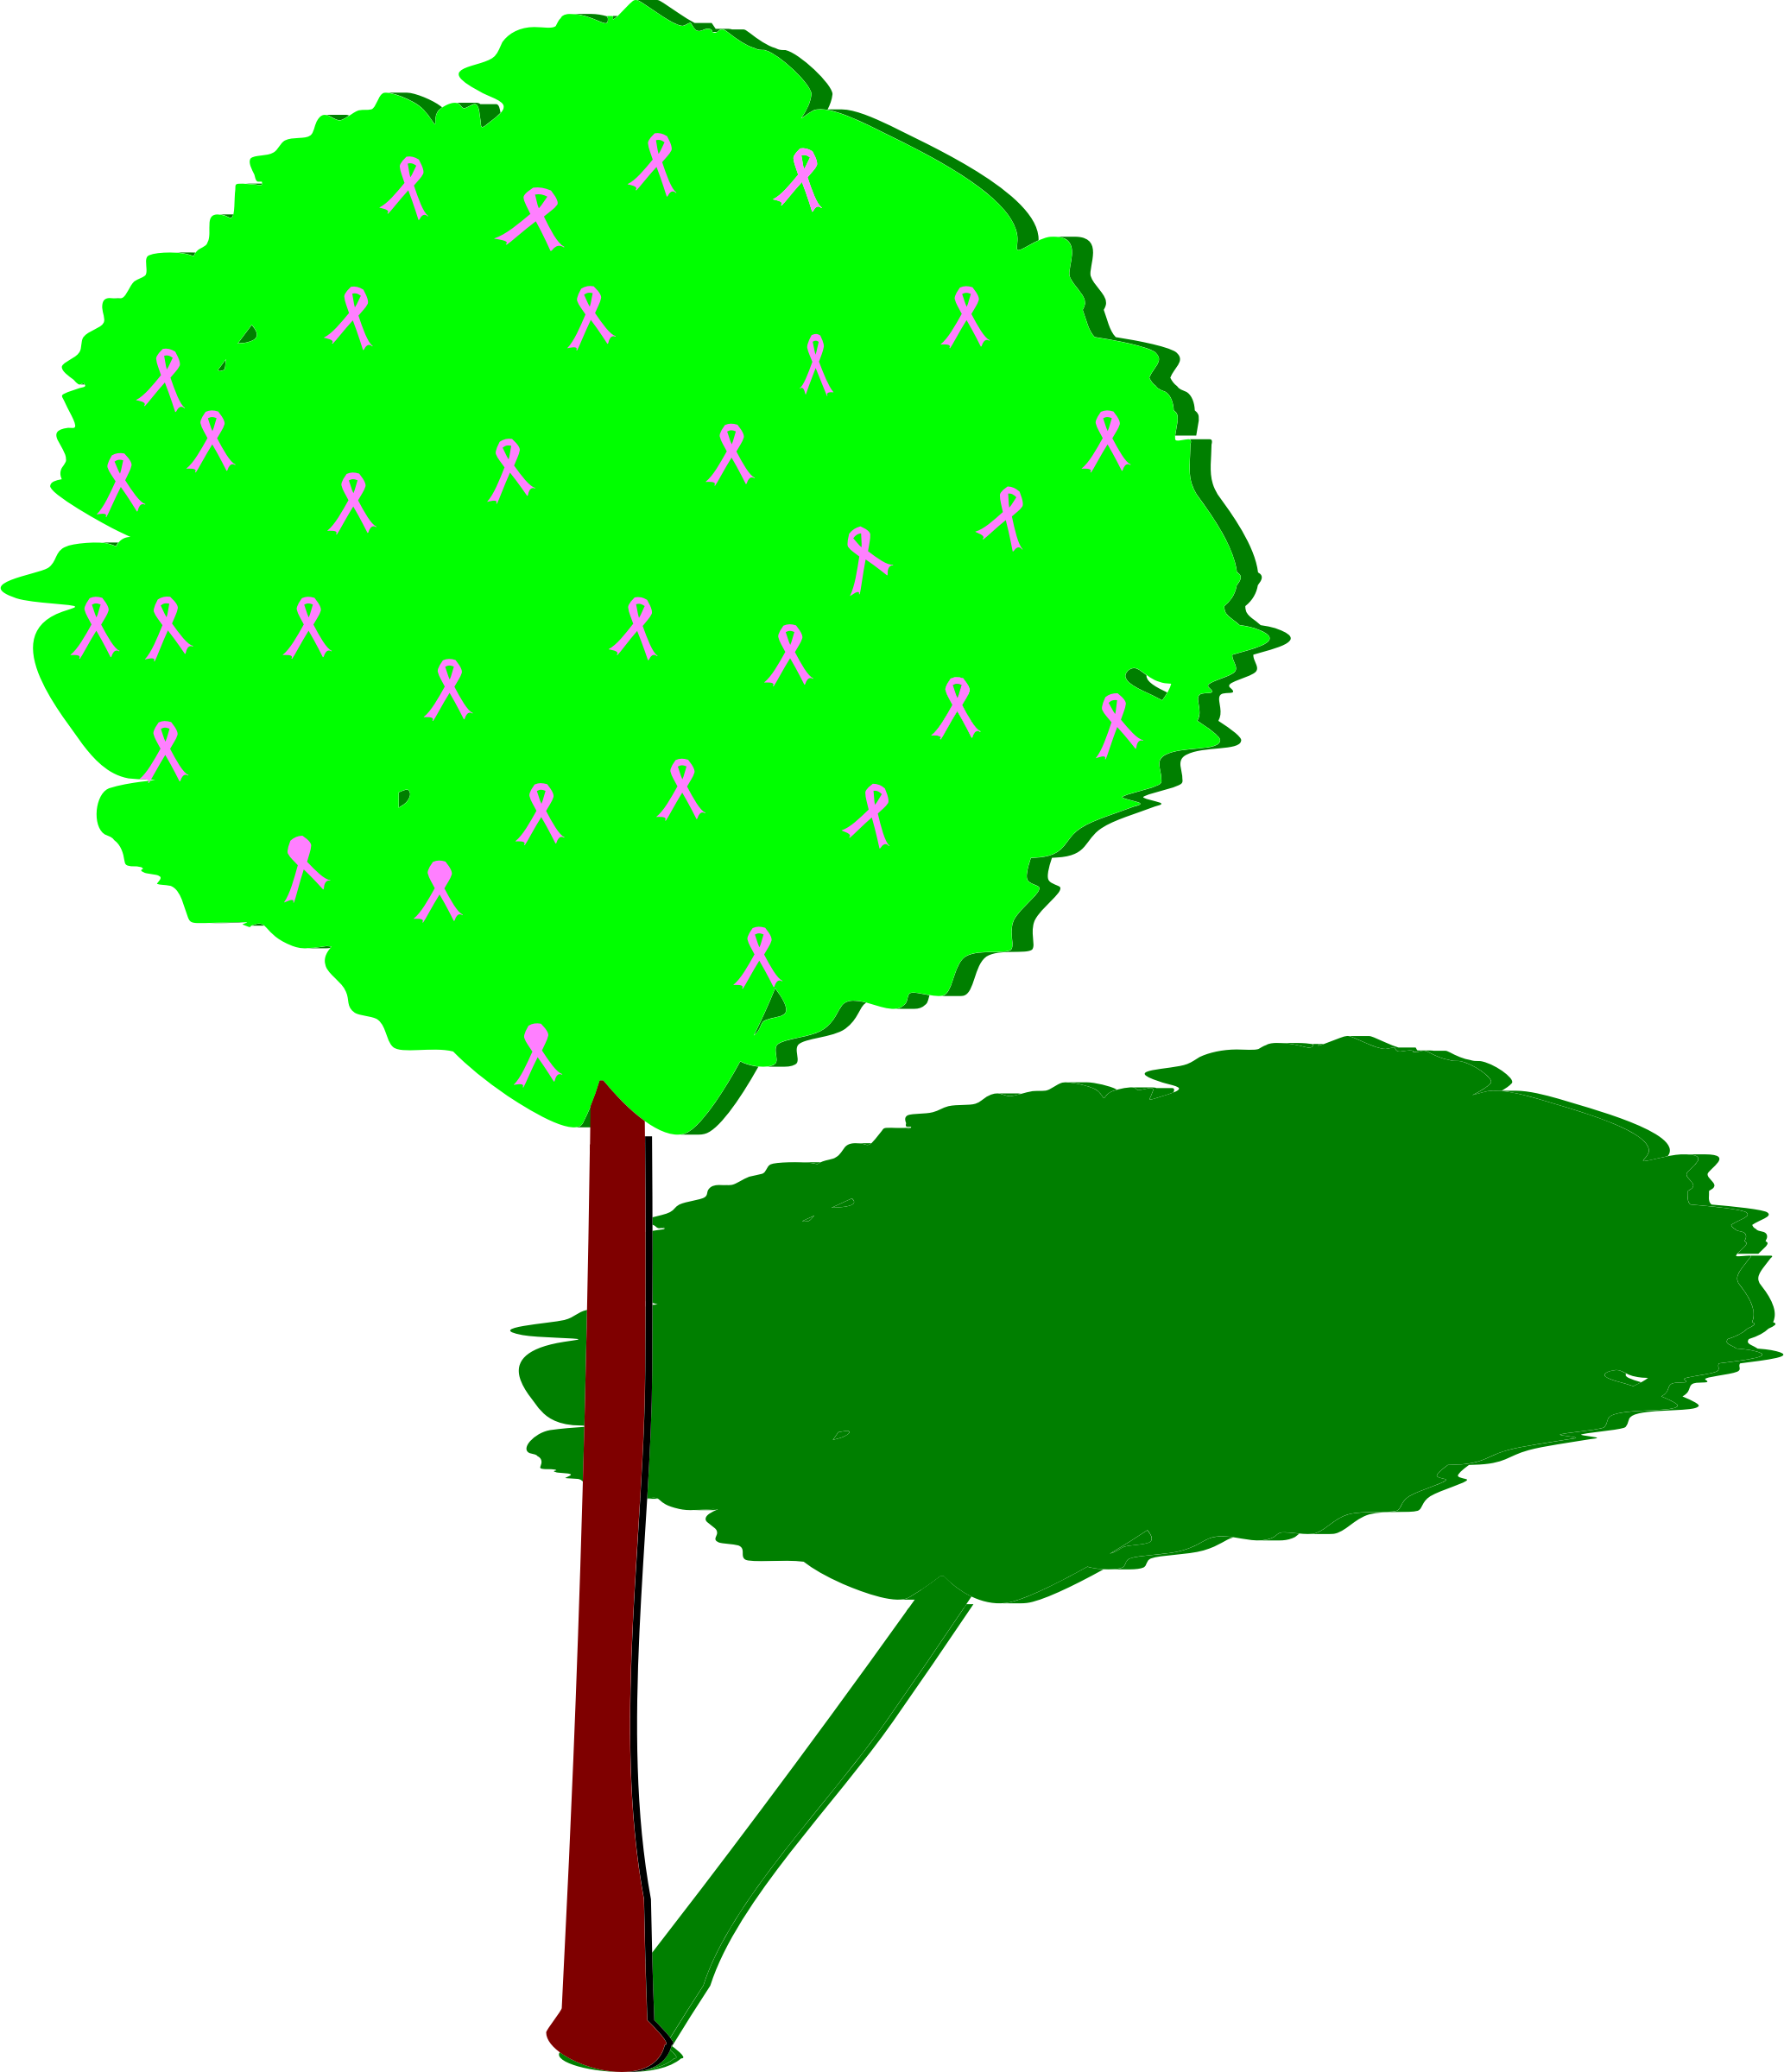 svg transparent library Life clipart cartoon tree. Of with pink ribbons.